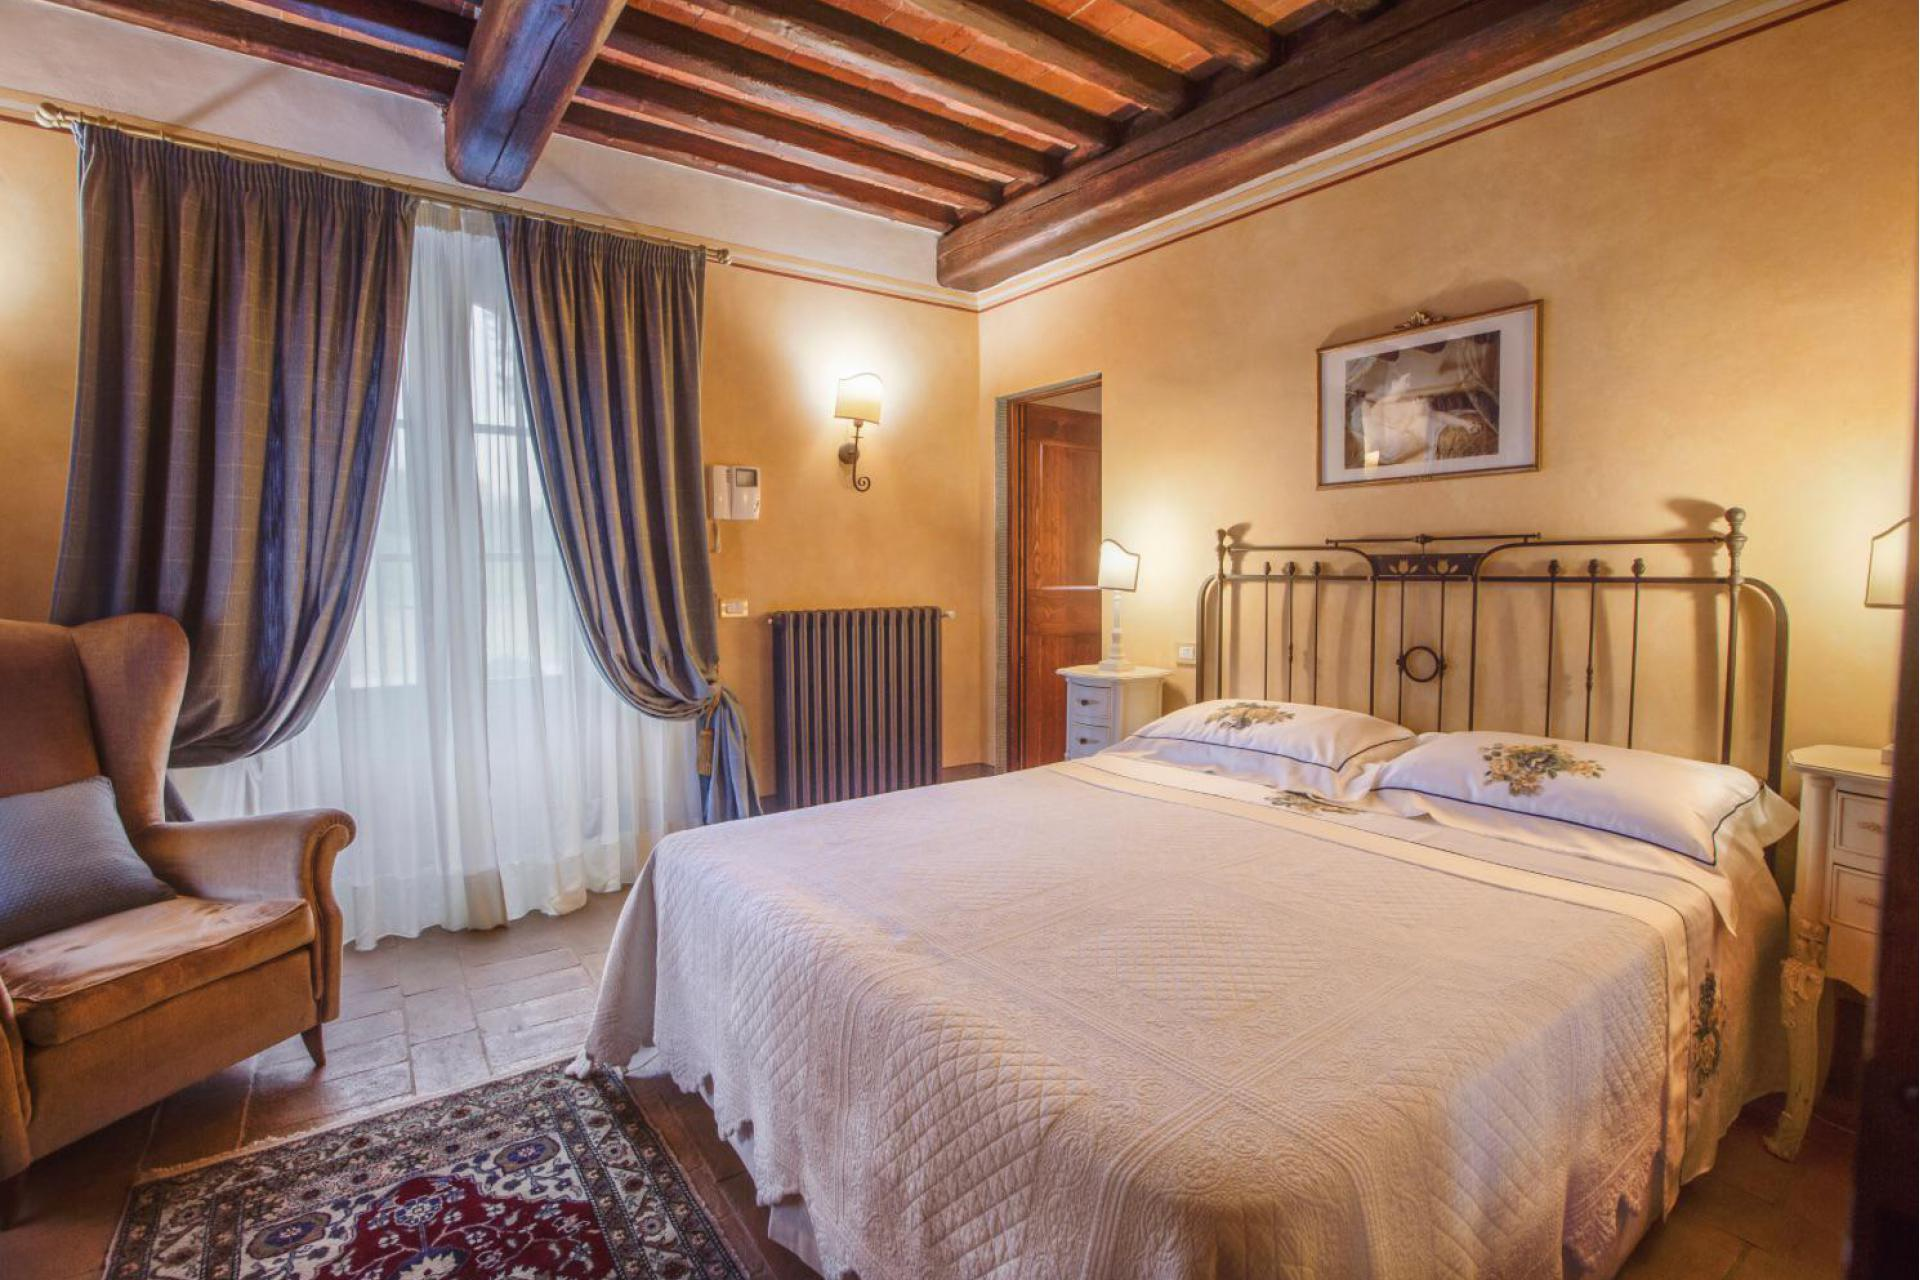 Agriturismo Tuscany Cosy agriturismo 800 meters from the Tuscan coast